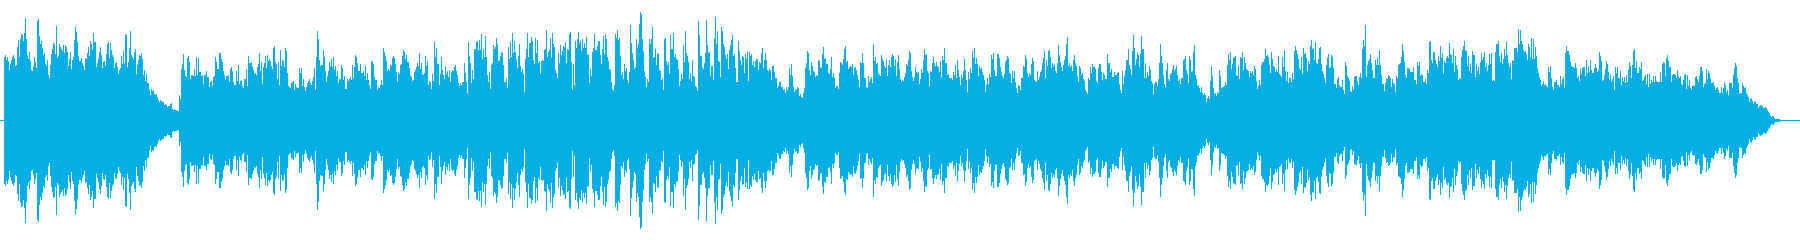 Dramatic instrumental songs by the piano's reproduced waveform